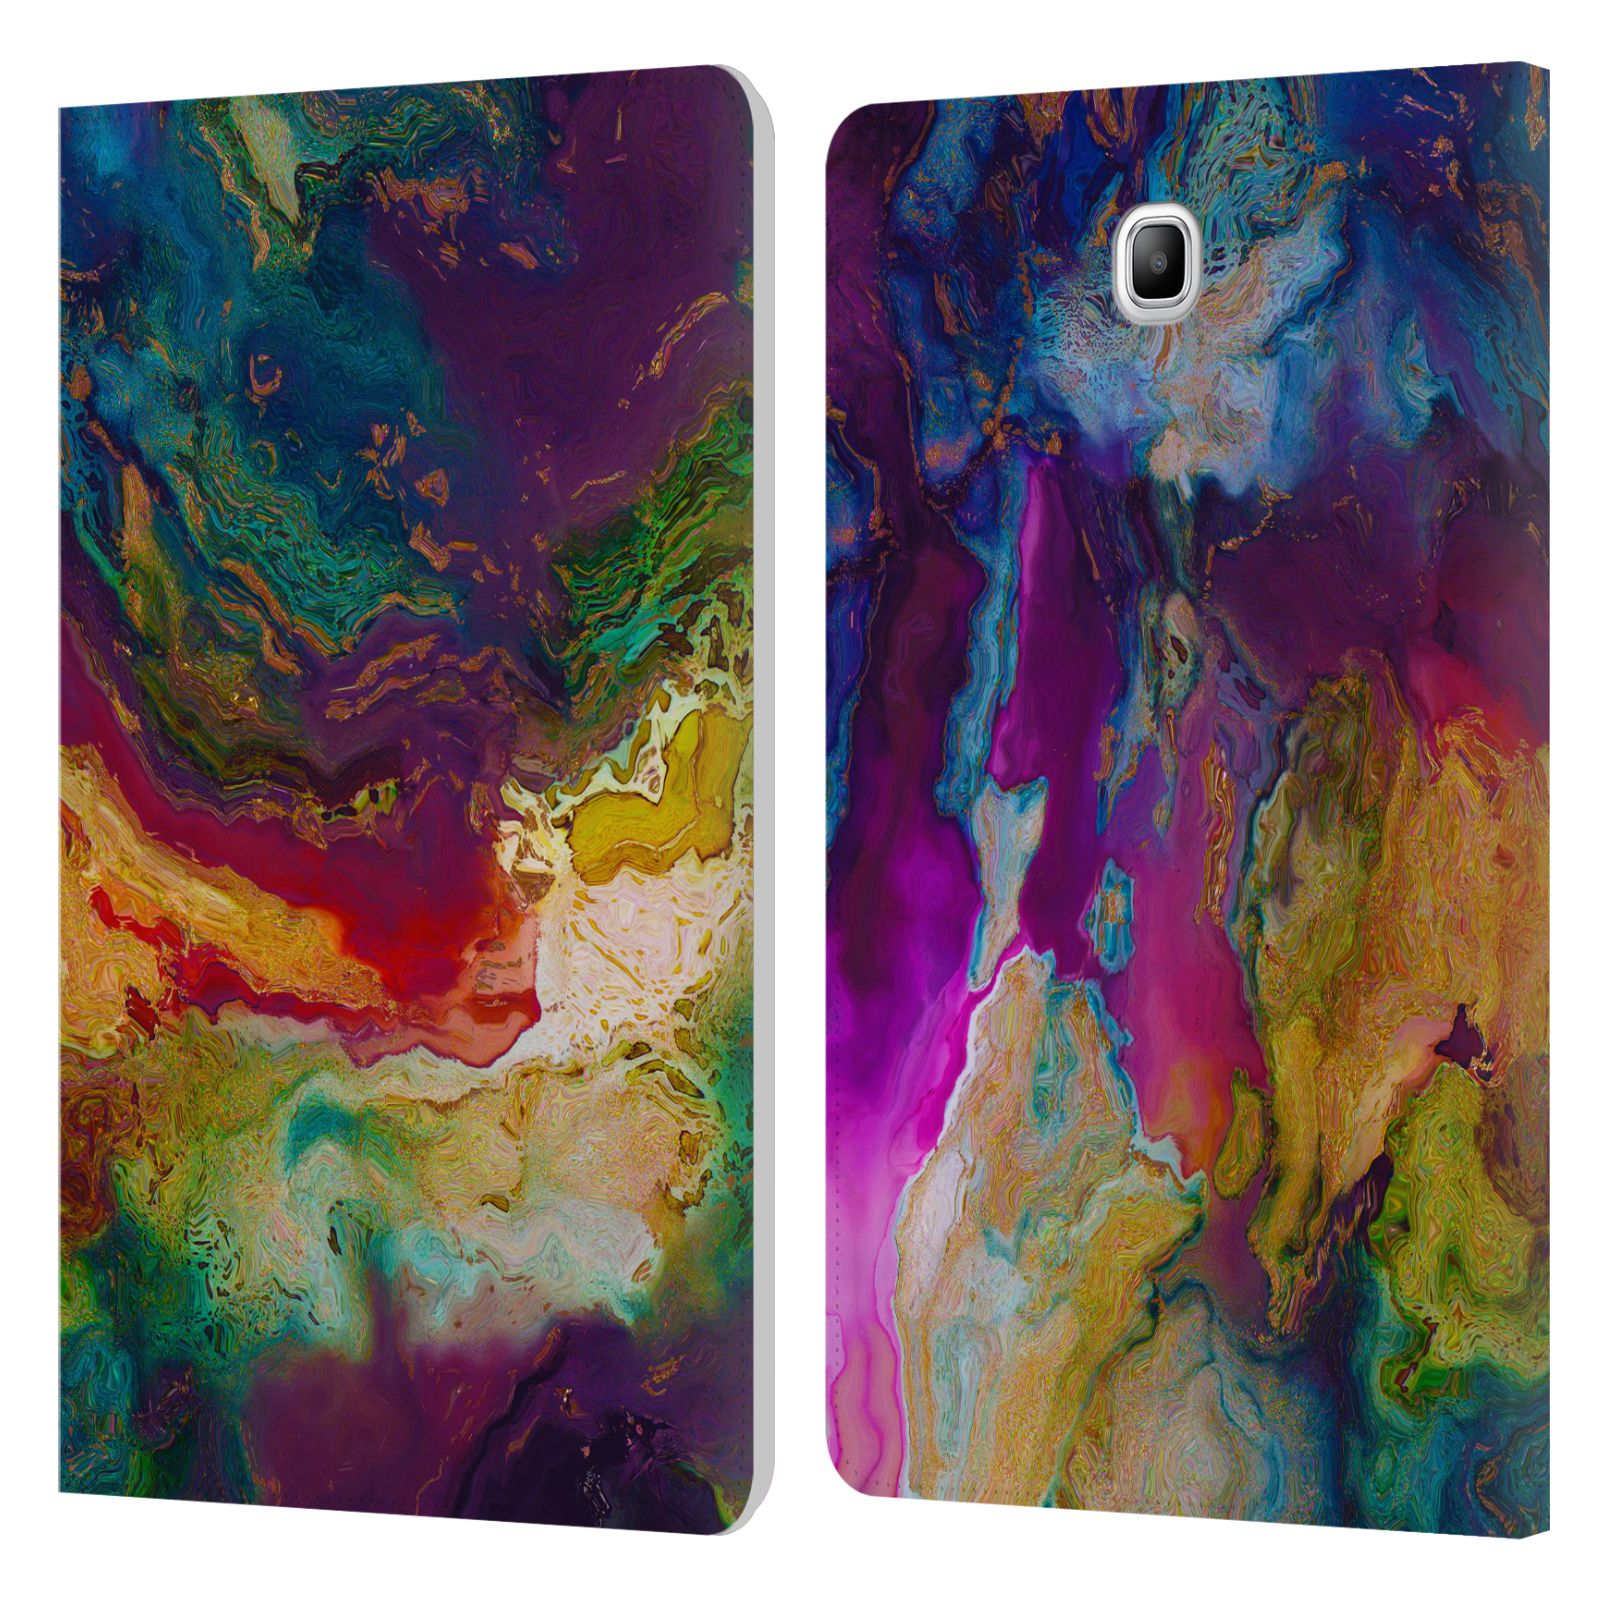 OFFICIAL-HAROULITA-MARBLE-2-LEATHER-BOOK-WALLET-CASE-FOR-SAMSUNG-GALAXY-TABLETS